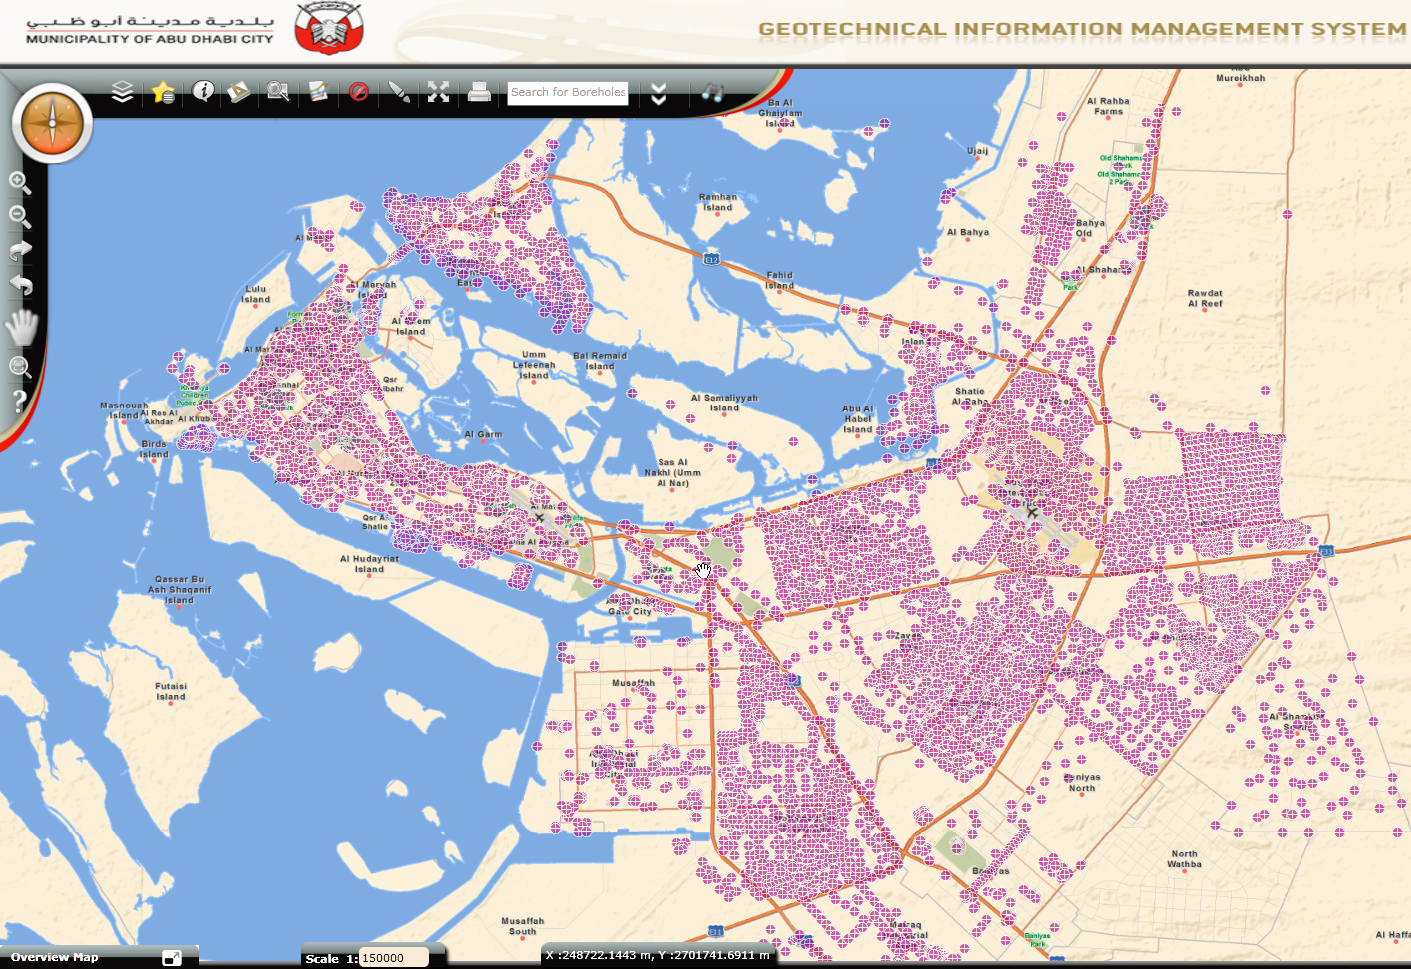 Article on how Abu Dhabi City uses gINT for managing information for